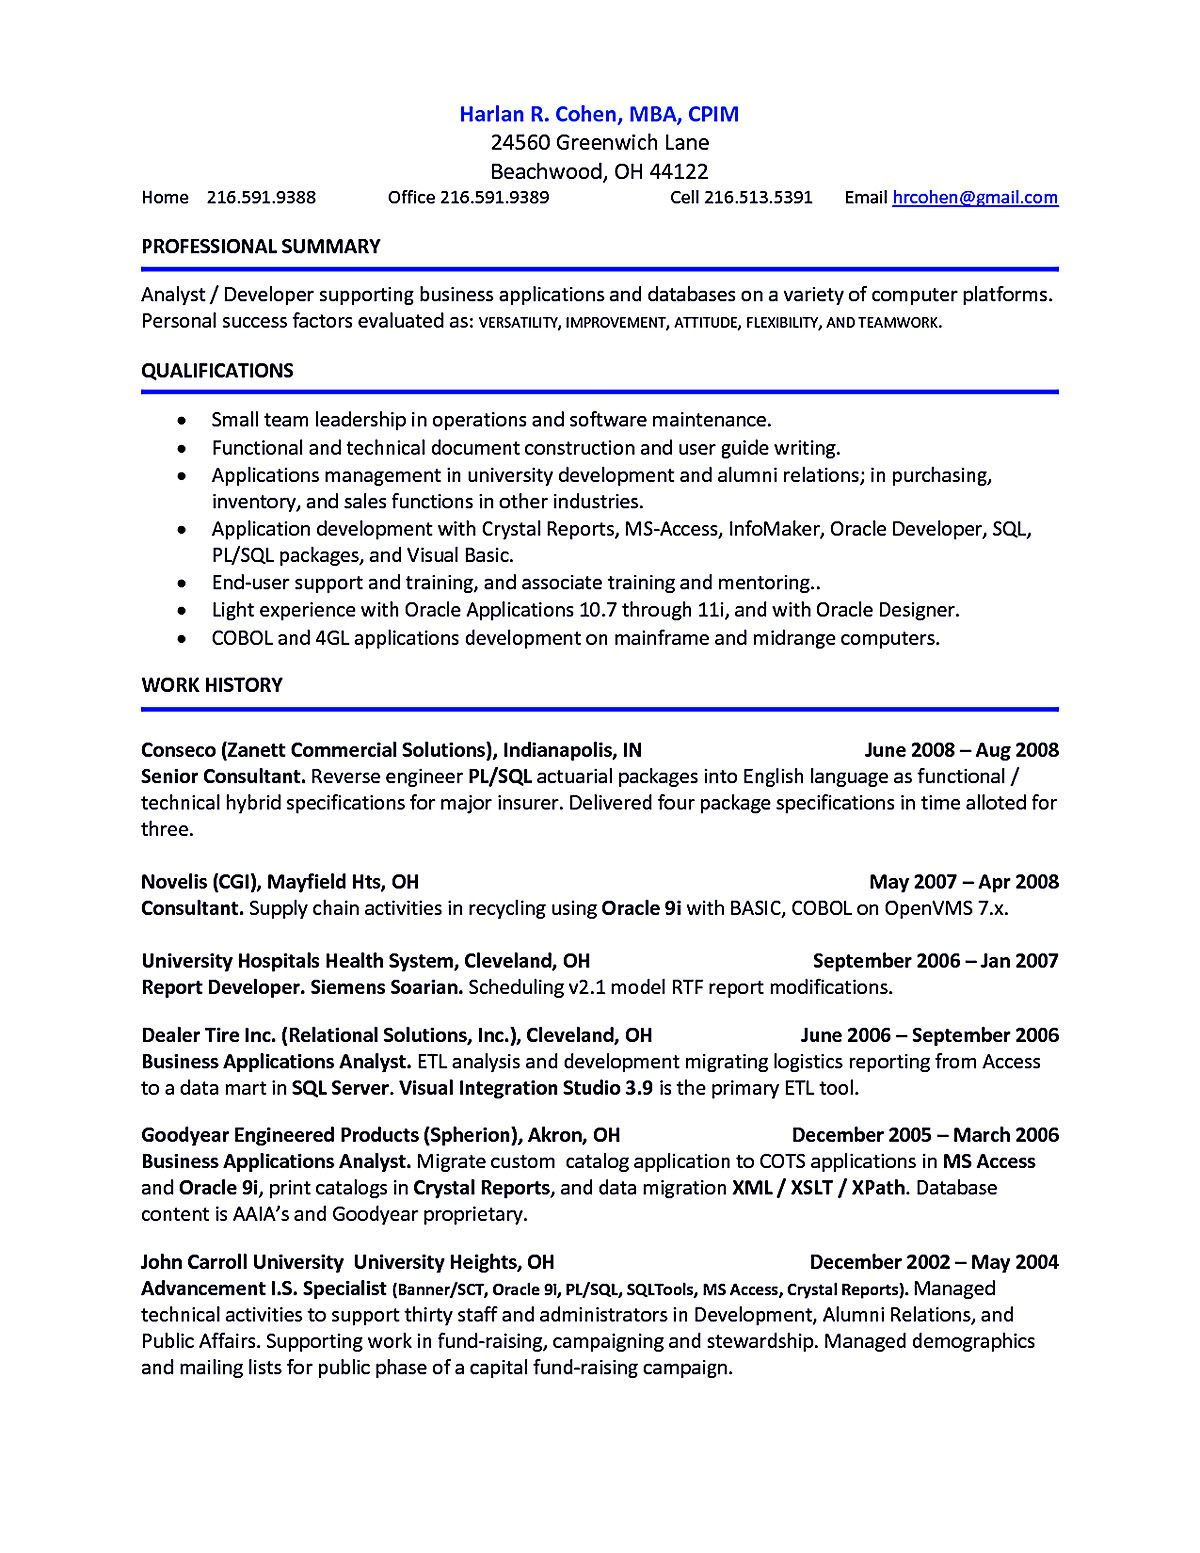 bf94d311a98d577f9cb0d4fe9cb08673 Sample Application Letter For Accounting Clerk on clerk resume cover, assistant reference, email cover, consulting engagement,